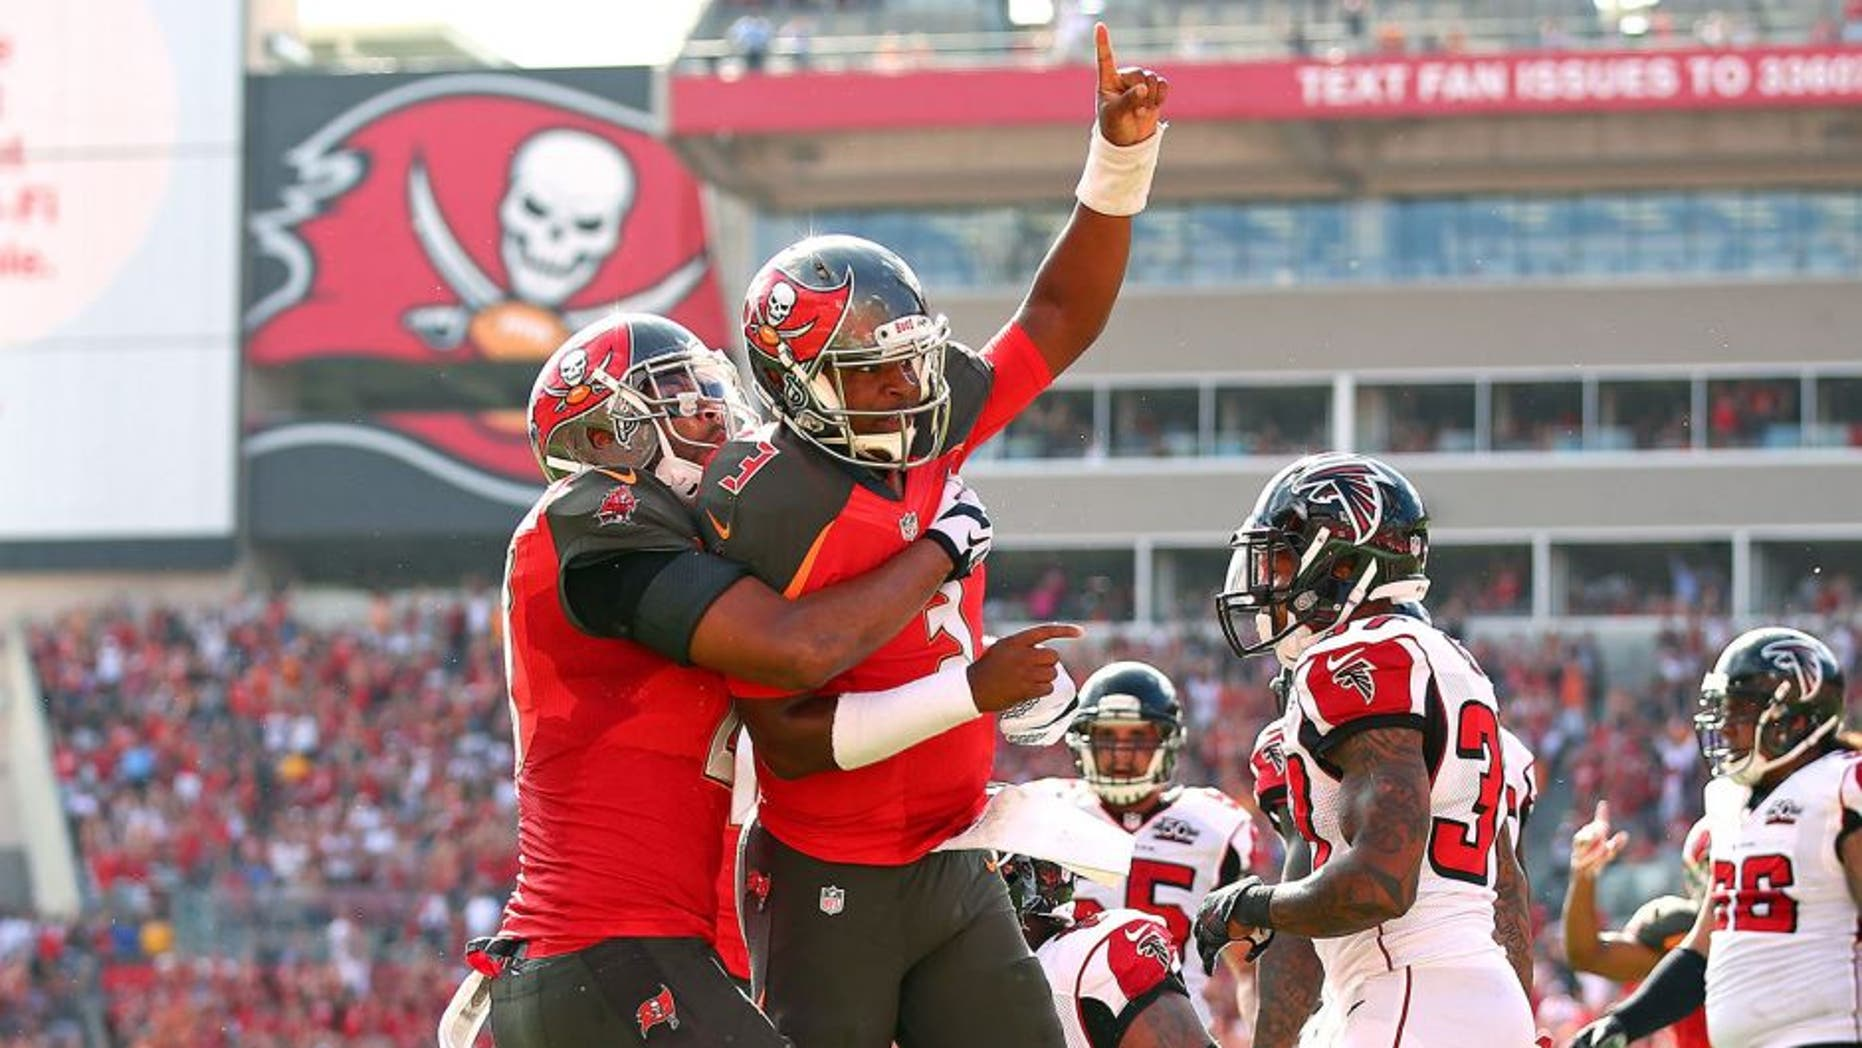 TAMPA, FL - DECEMBER 06: Jameis Winston #3 of the Tampa Bay Buccaneers reacts after scoring a touchdown during the first quarter of the game against the Atlanta Falcons at Raymond James Stadium on December 6, 2015 in Tampa, Florida. (Photo by Rob Foldy/Getty Images)